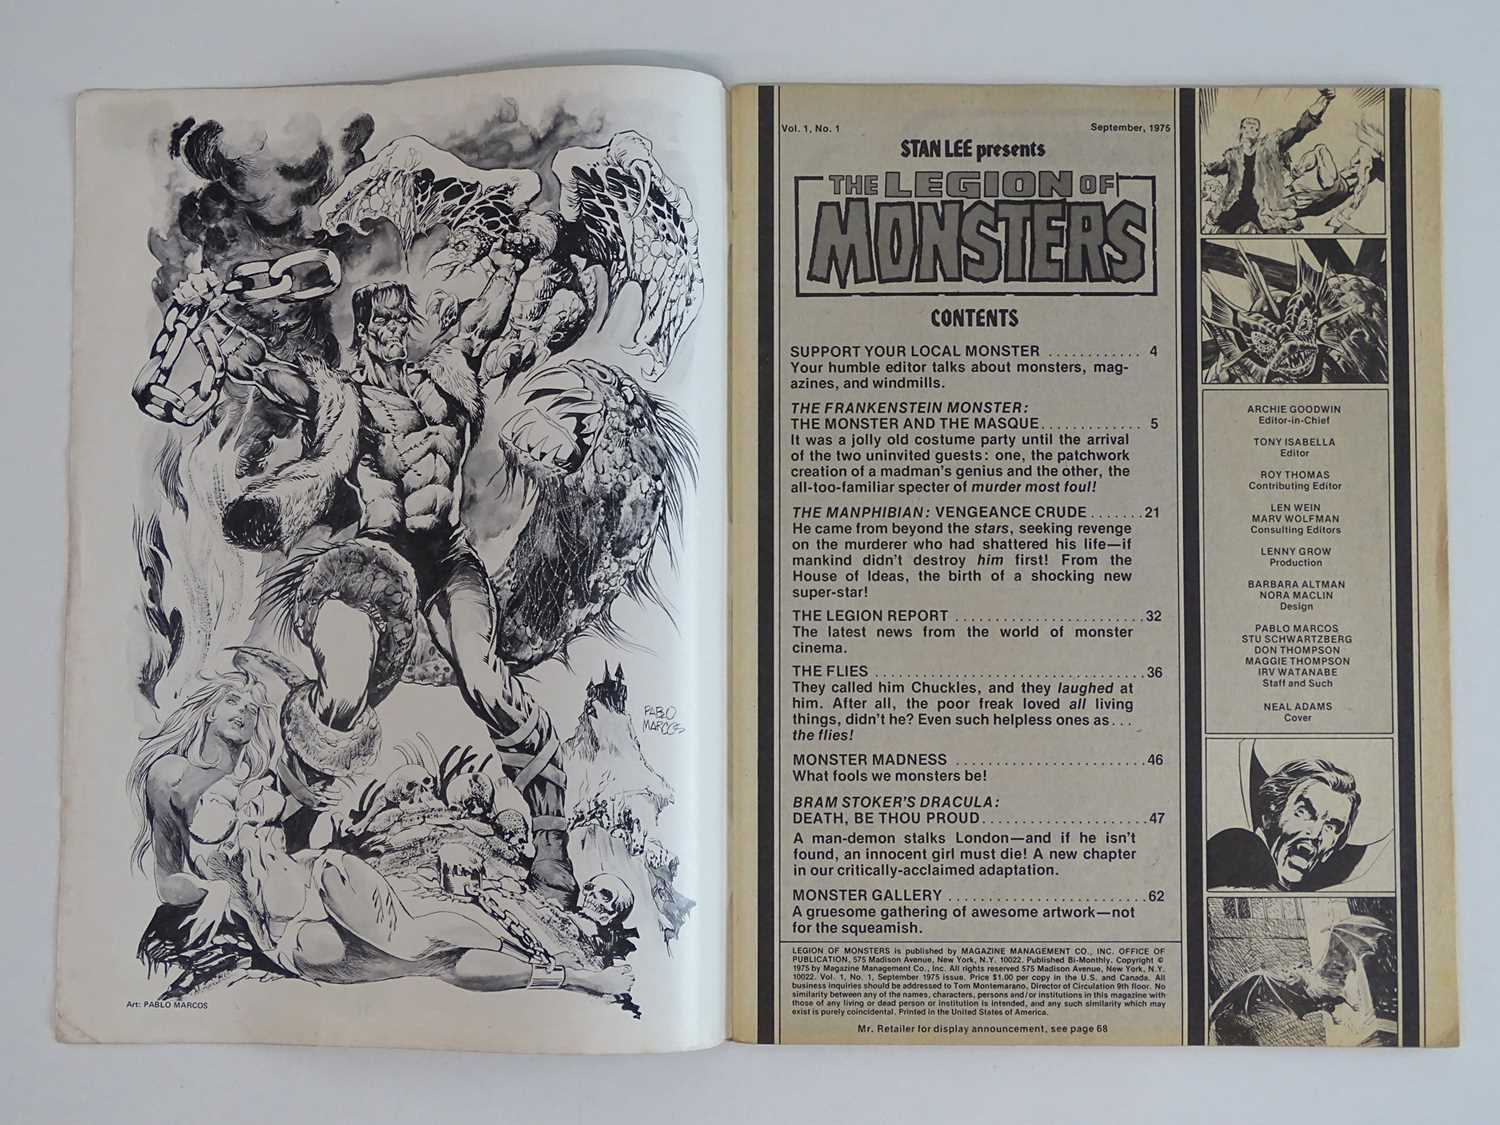 LEGION OF MONSTERS #1 - (1975 - MARVEL) Scarce Magazine Format - Origin and First appearance of - Image 3 of 10